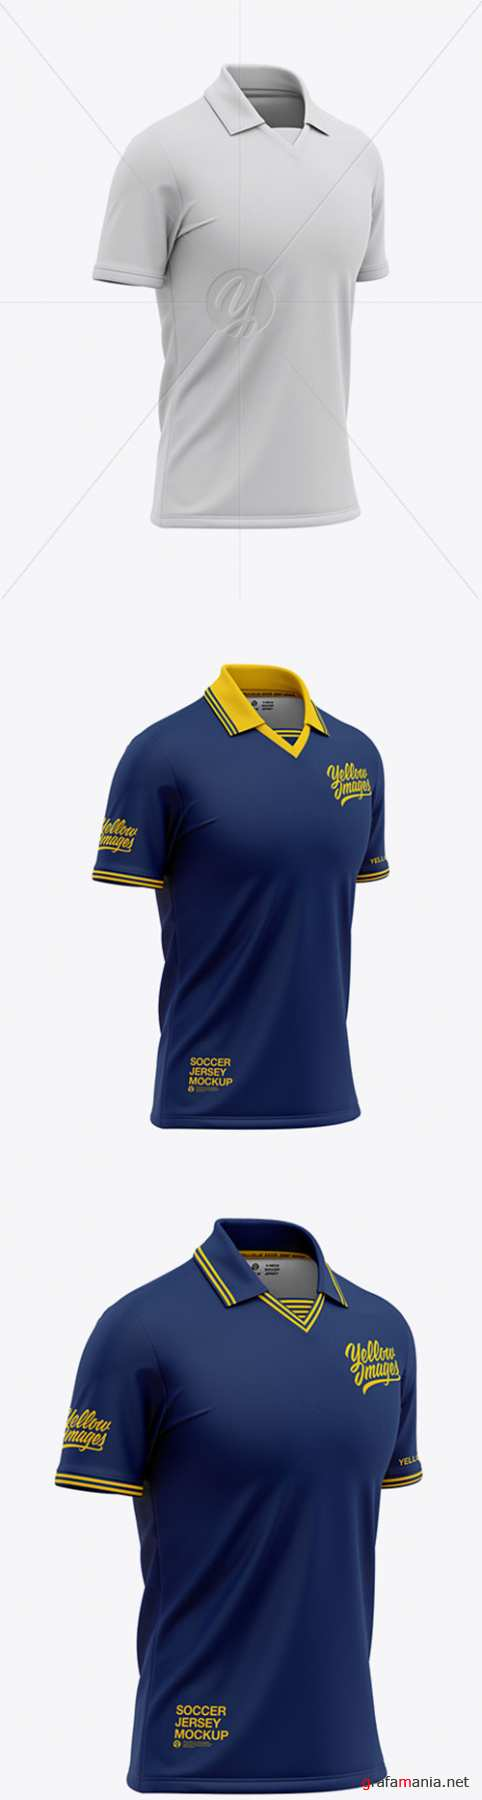 Mens Soccer /Cricket Jersey Mockup - Front Half Side View 47630